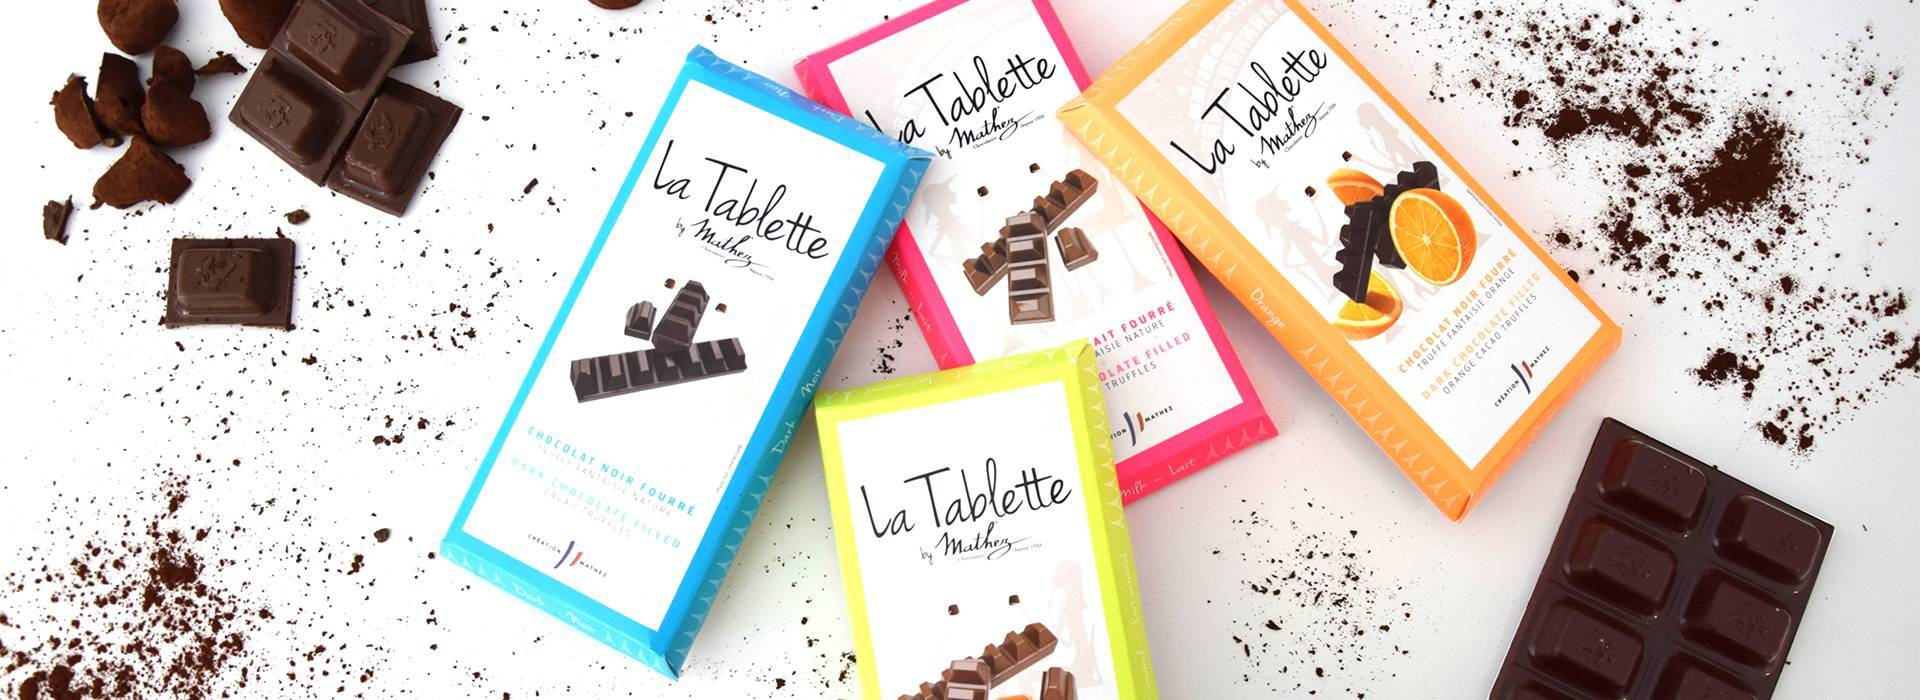 Chocolate Tablette Collection by Mathez